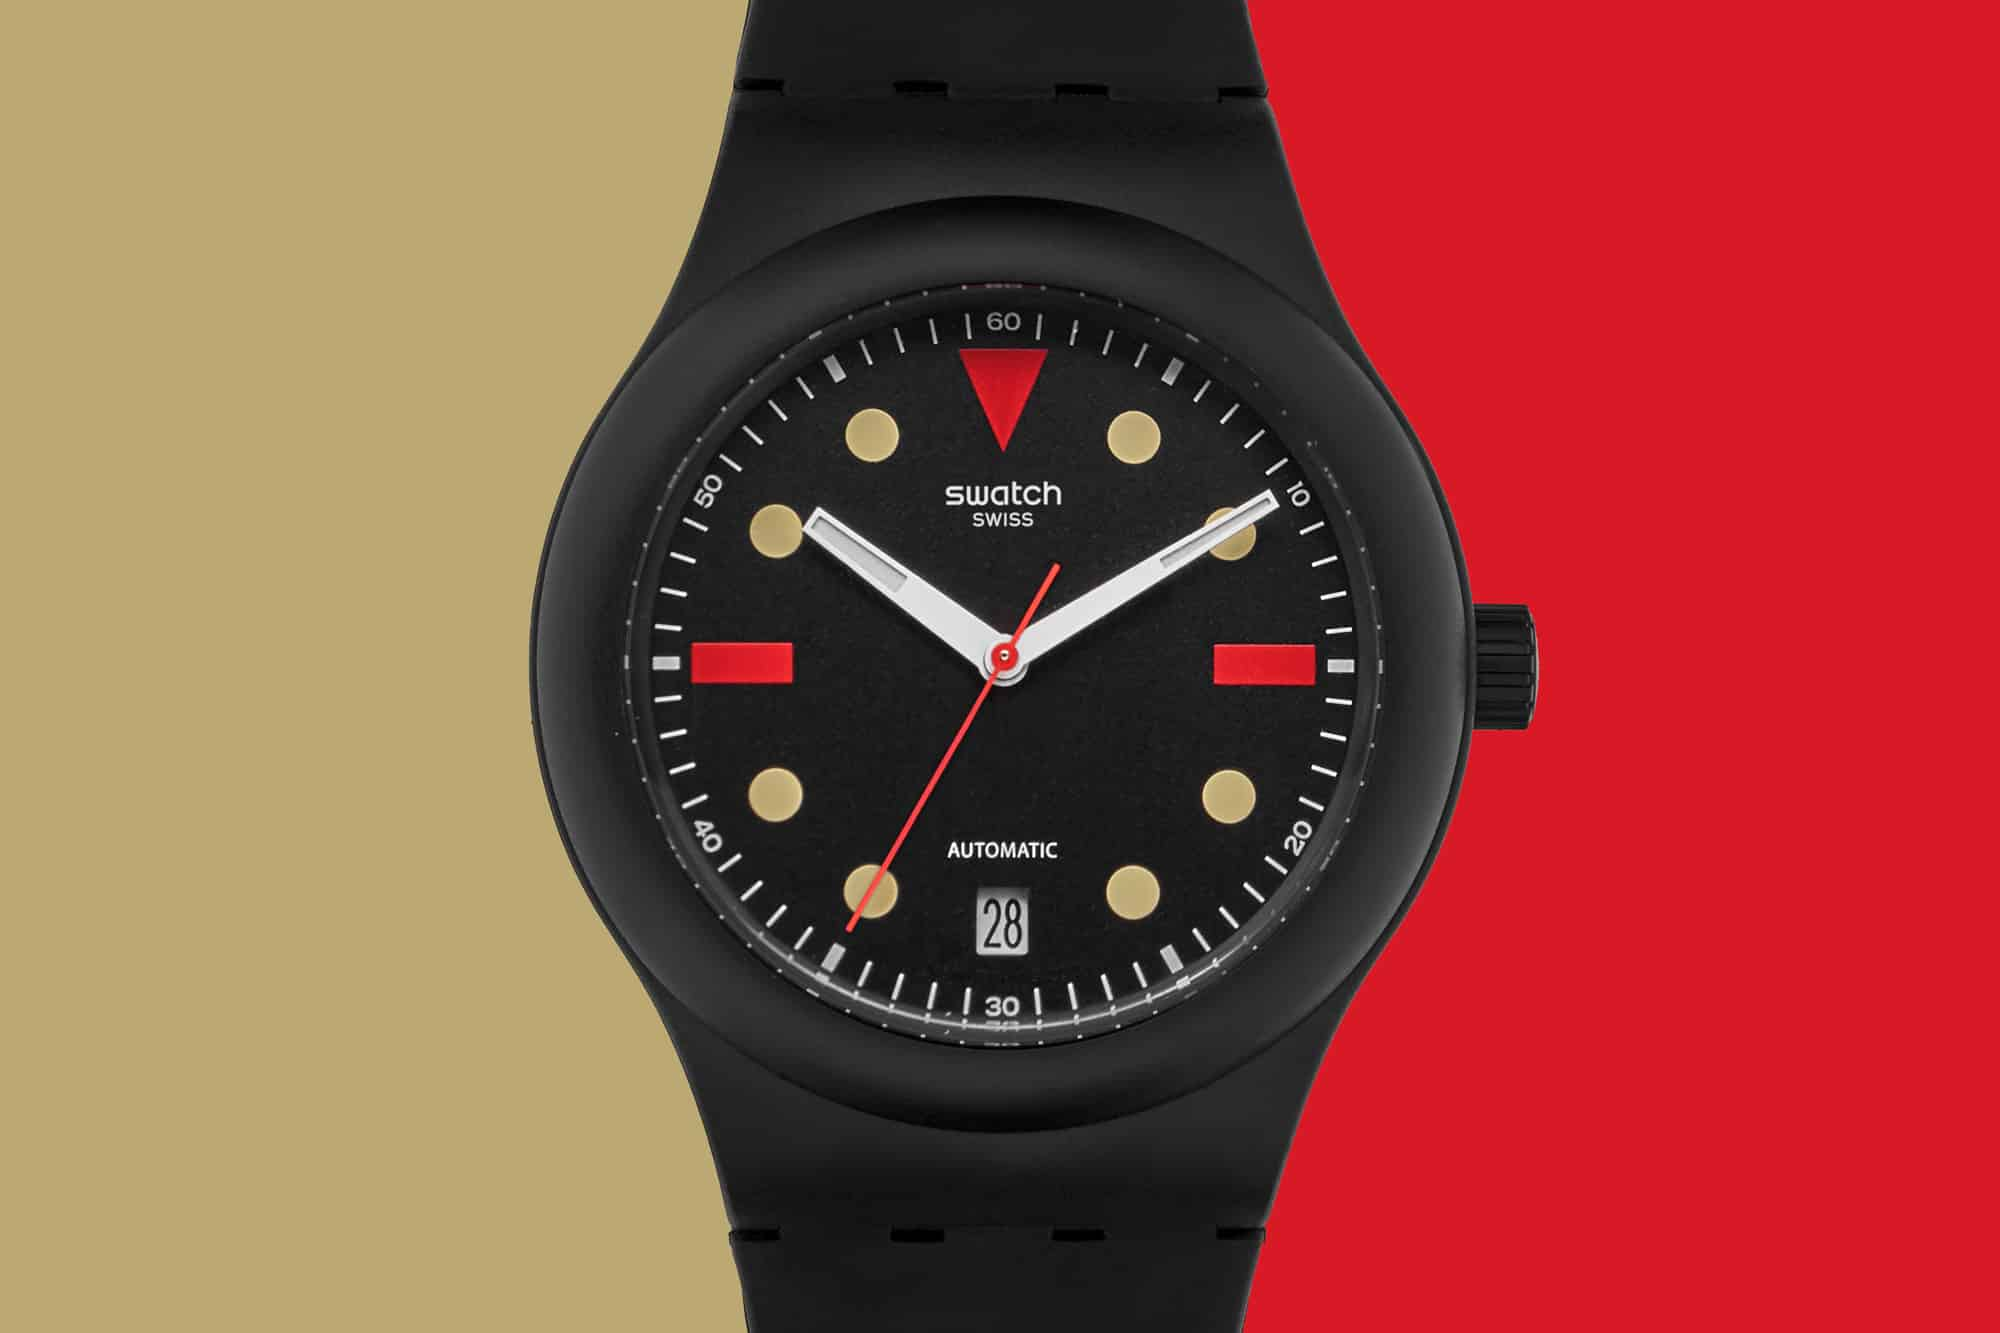 Introducing the Swatch Sistem51 for Hodinkee Generation 1986, Dropping Later Today